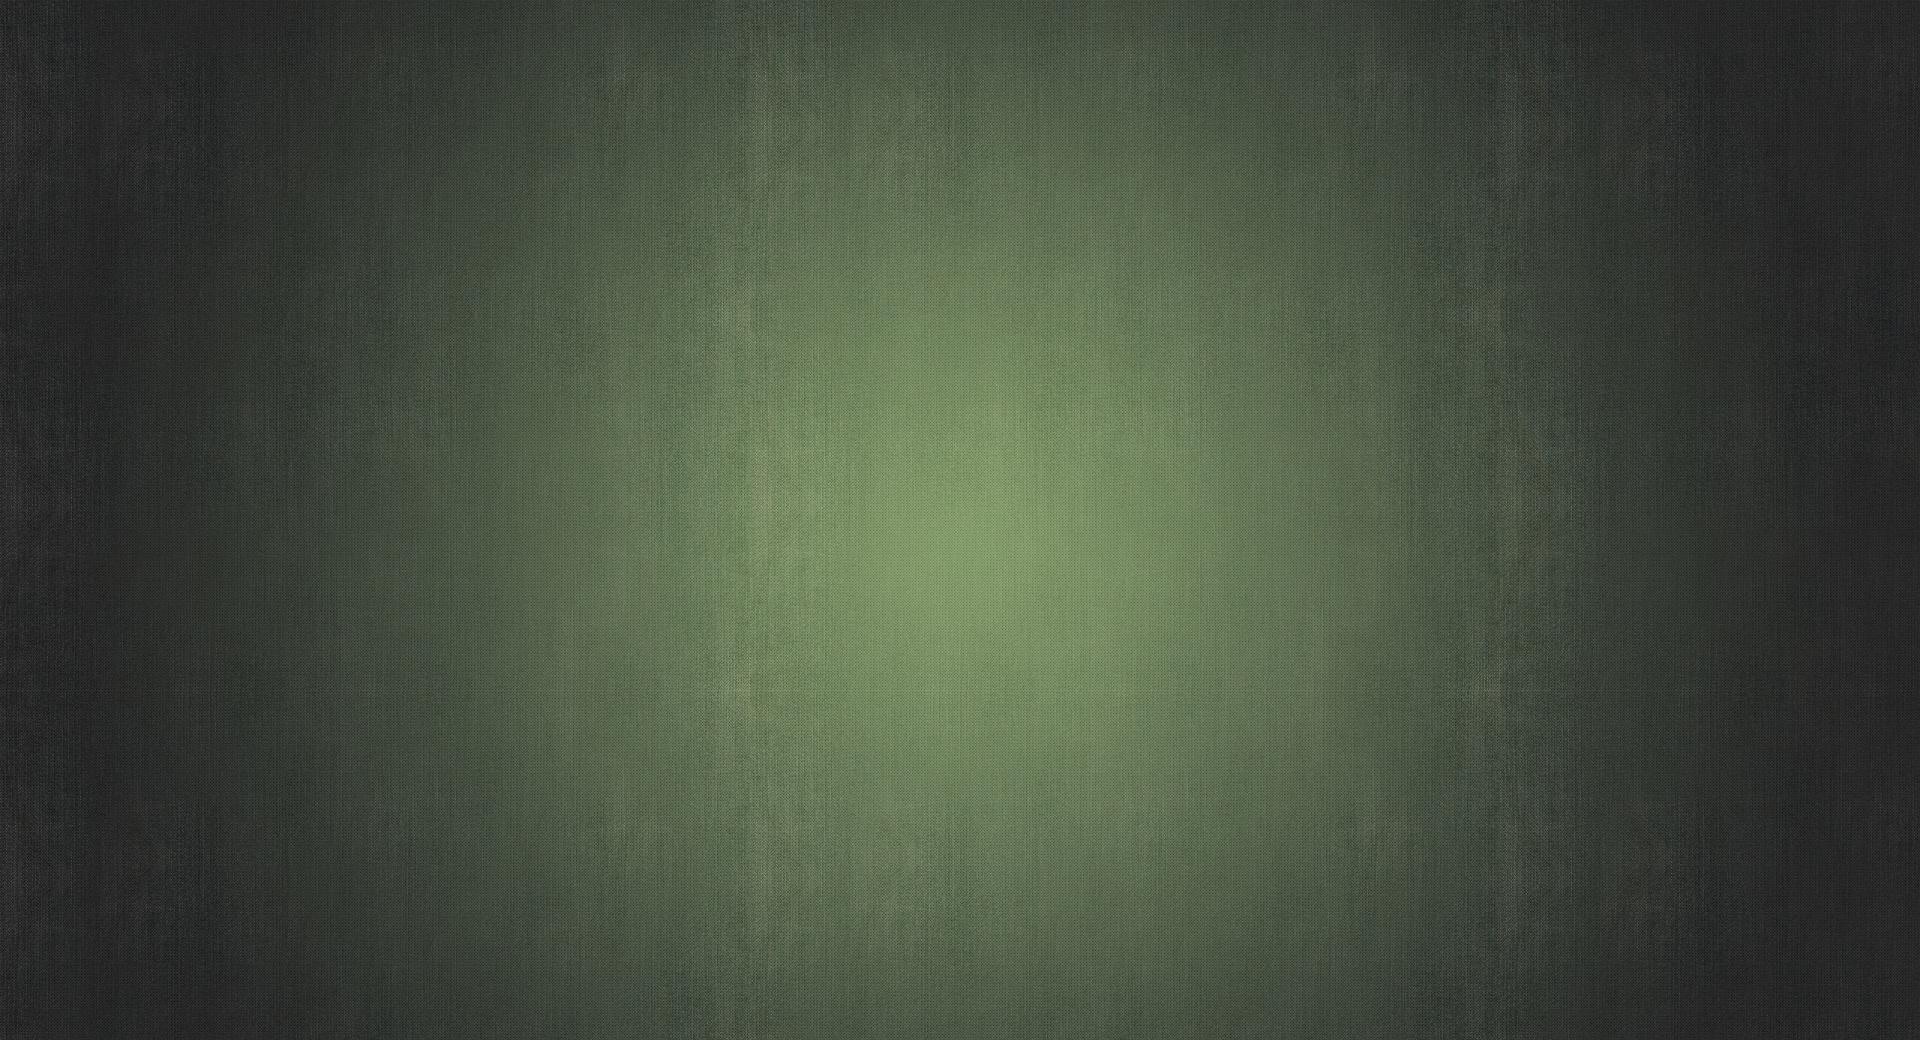 Green Fabric wallpapers HD quality